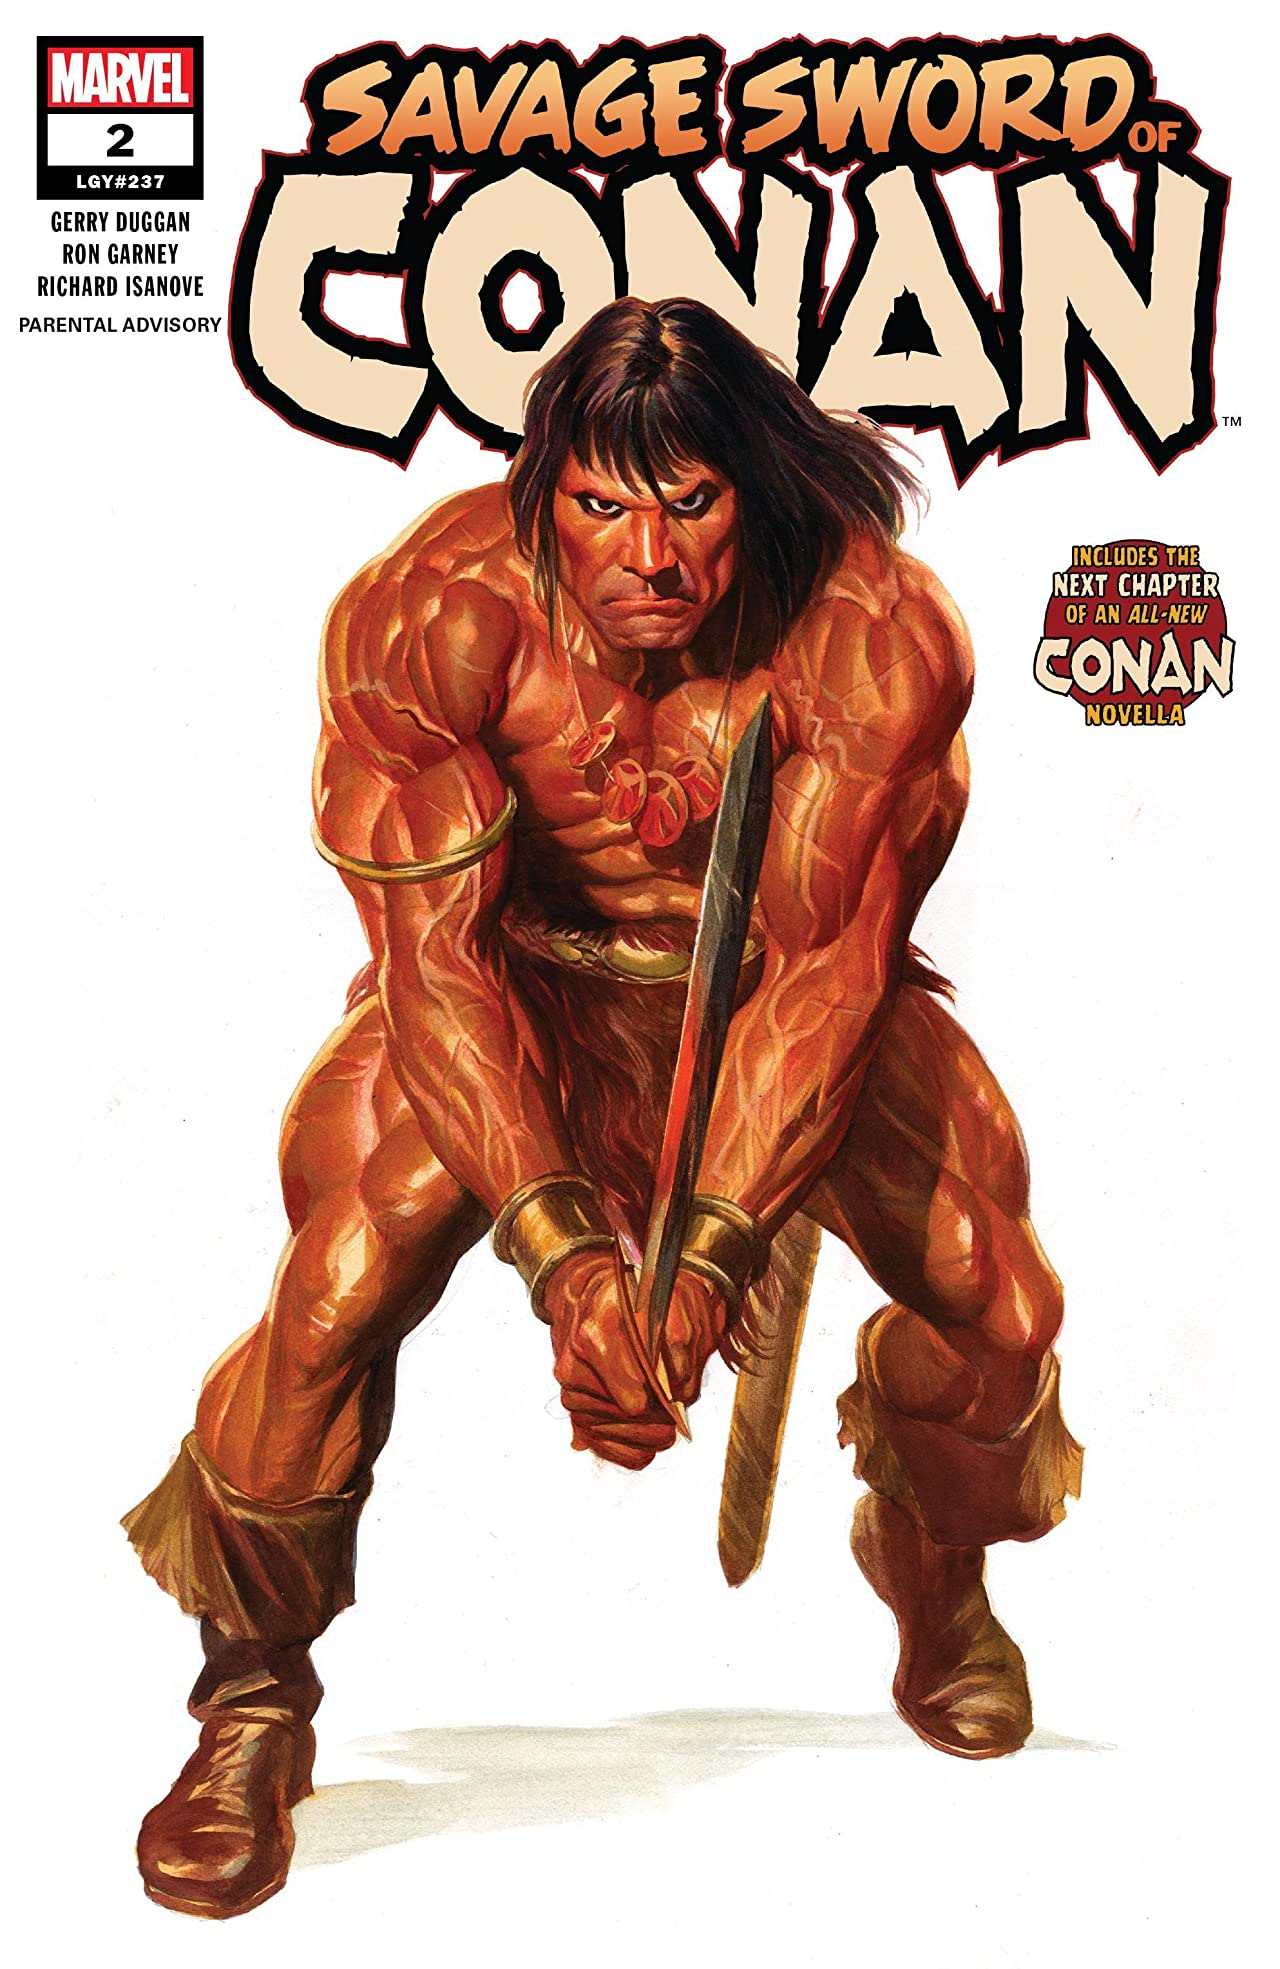 Savage Sword Of Conan (2019-) No.2